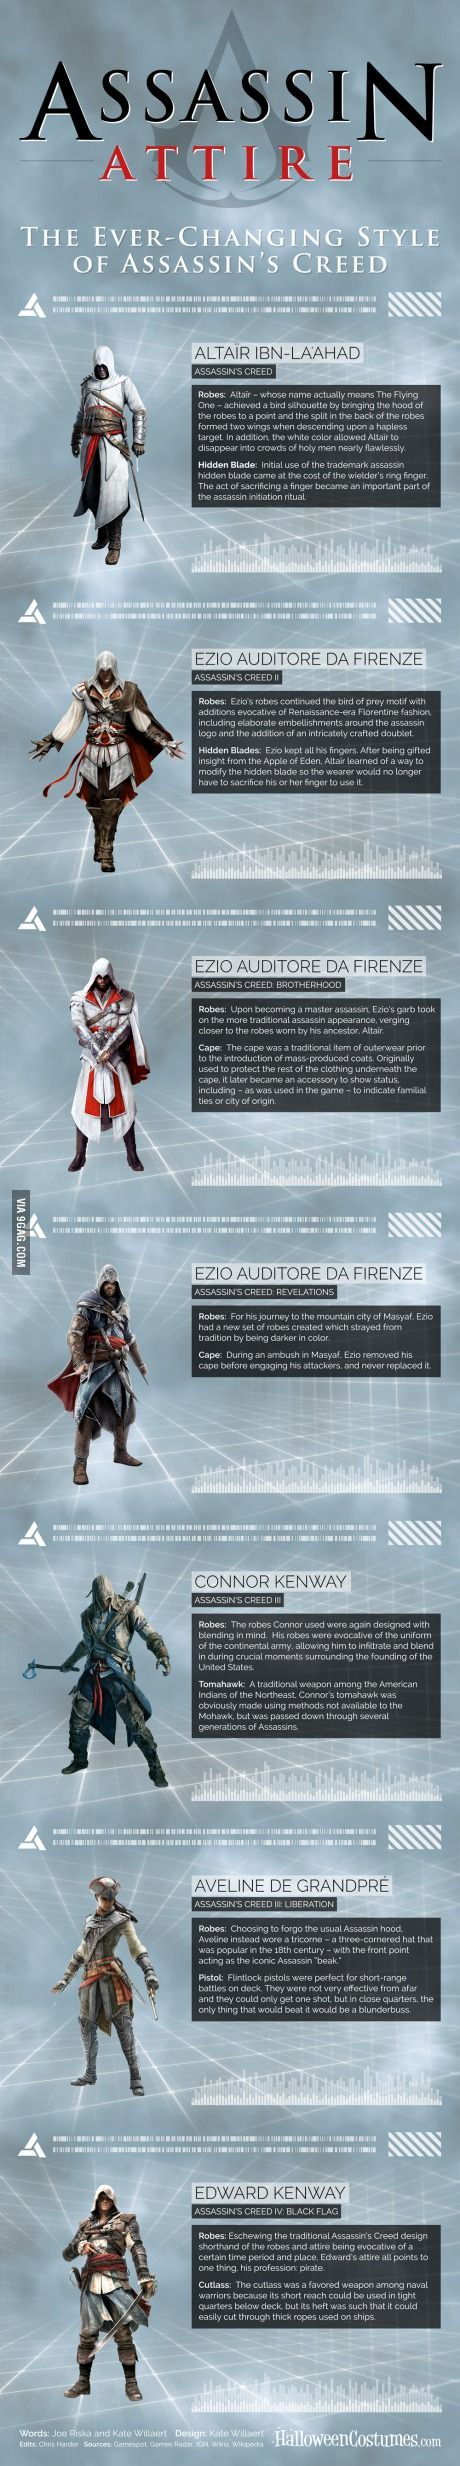 Assassin Attire - Assassin's Creed Infographic - http://geekstumbles.com/funny/assassin-attire-assassins-creed-infographic/